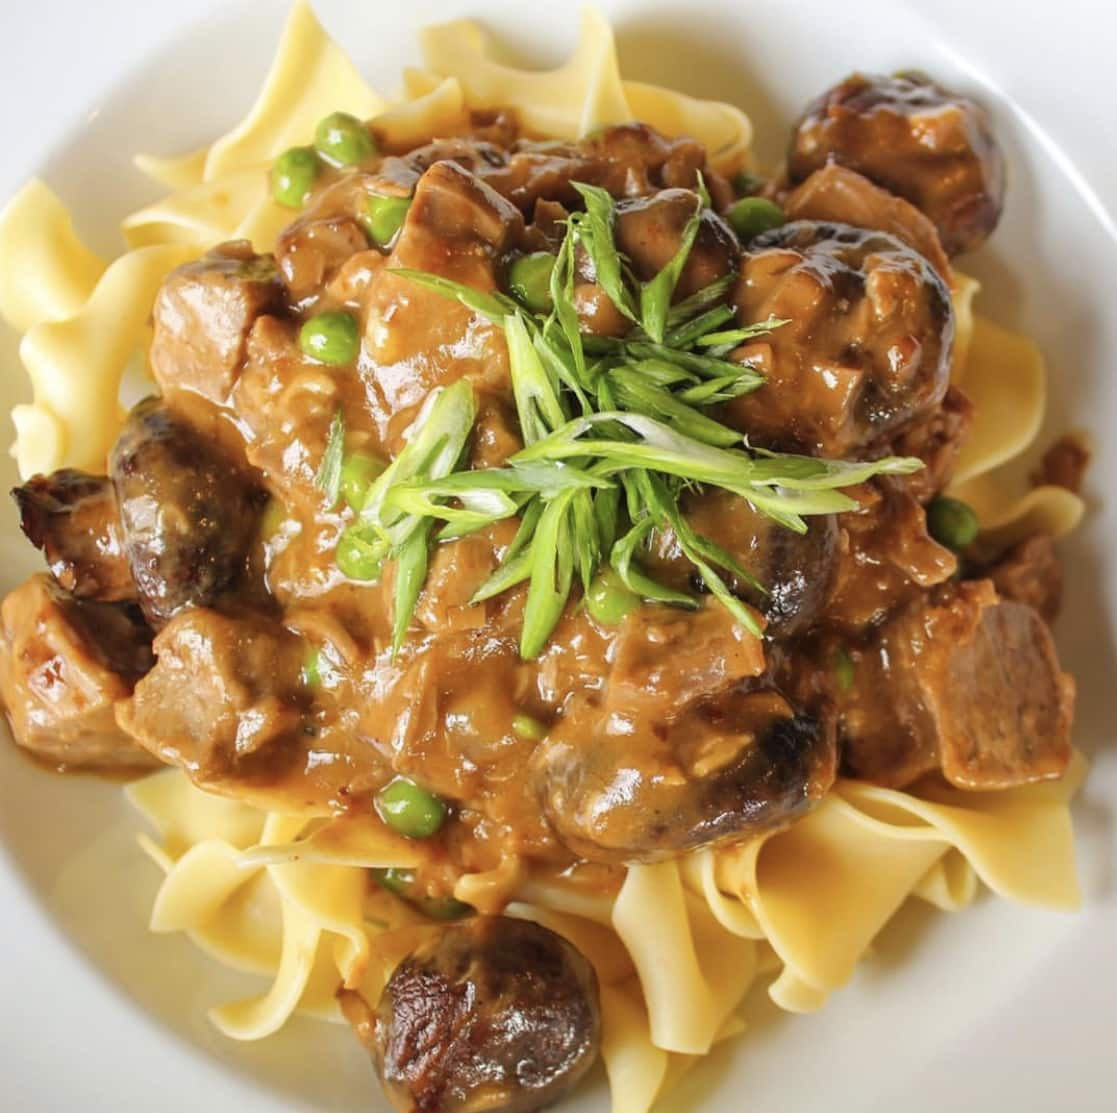 Braised Short Rib Stroganoff